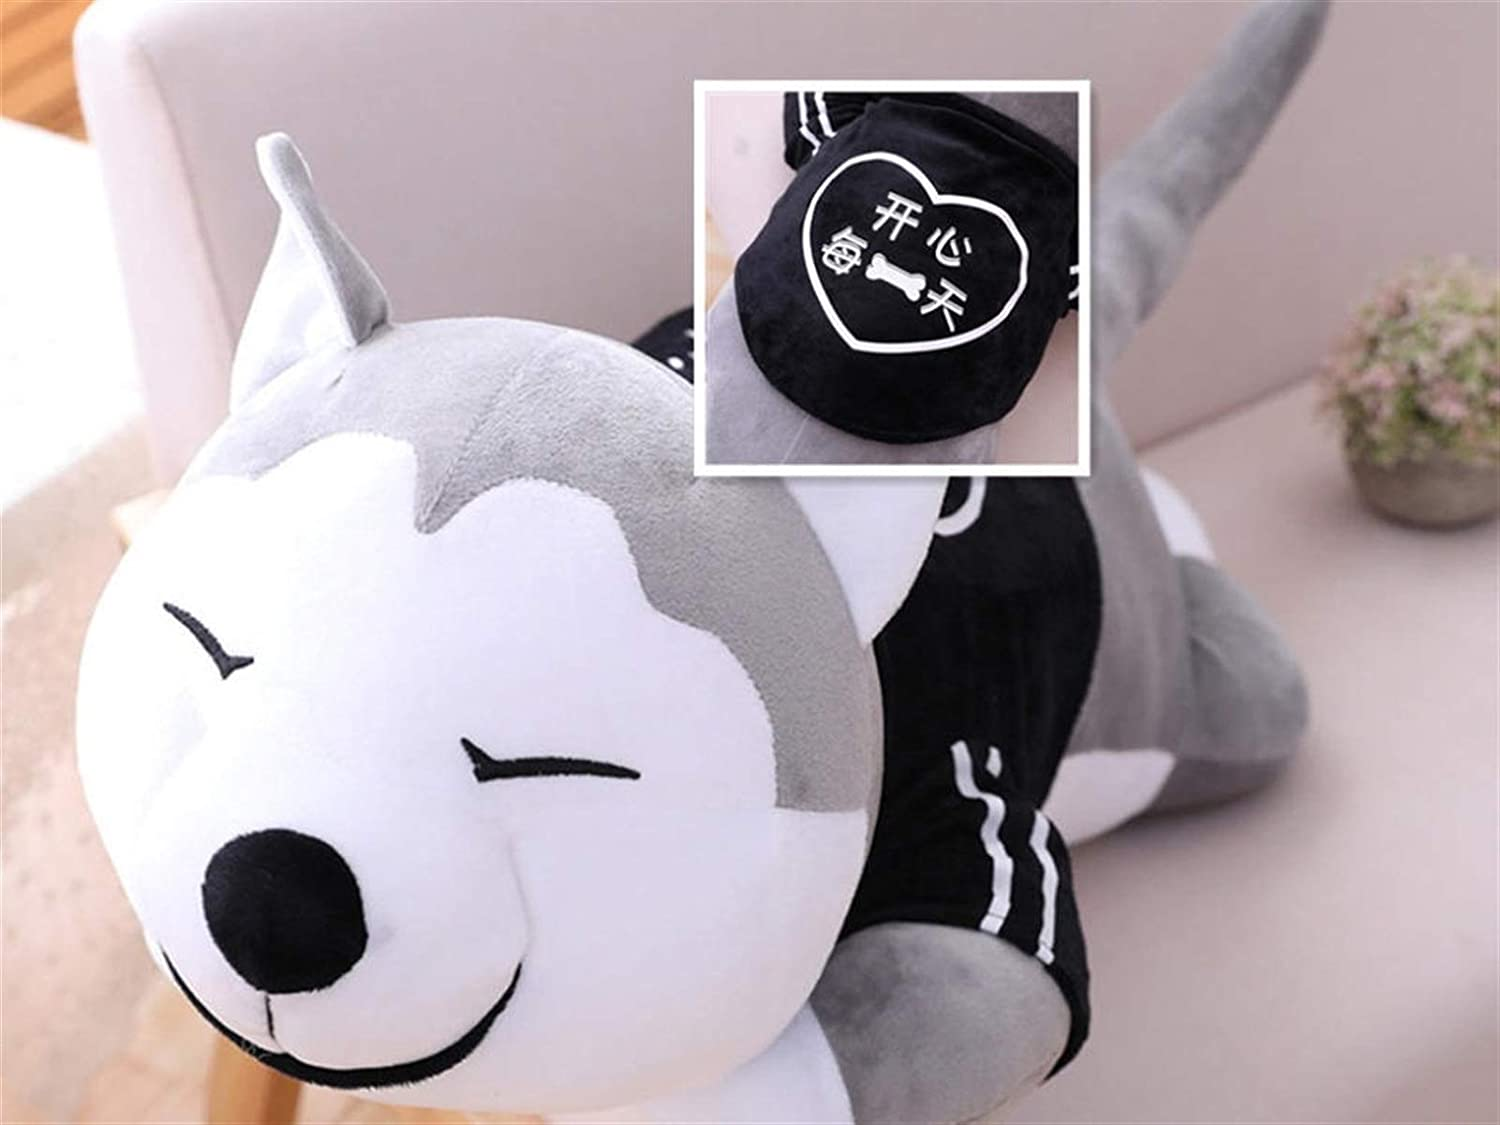 Comfortable and Durable Cute Plush Outlet ☆ Free Shipping So Cartoon Toy Animal Stuffed Under blast sales